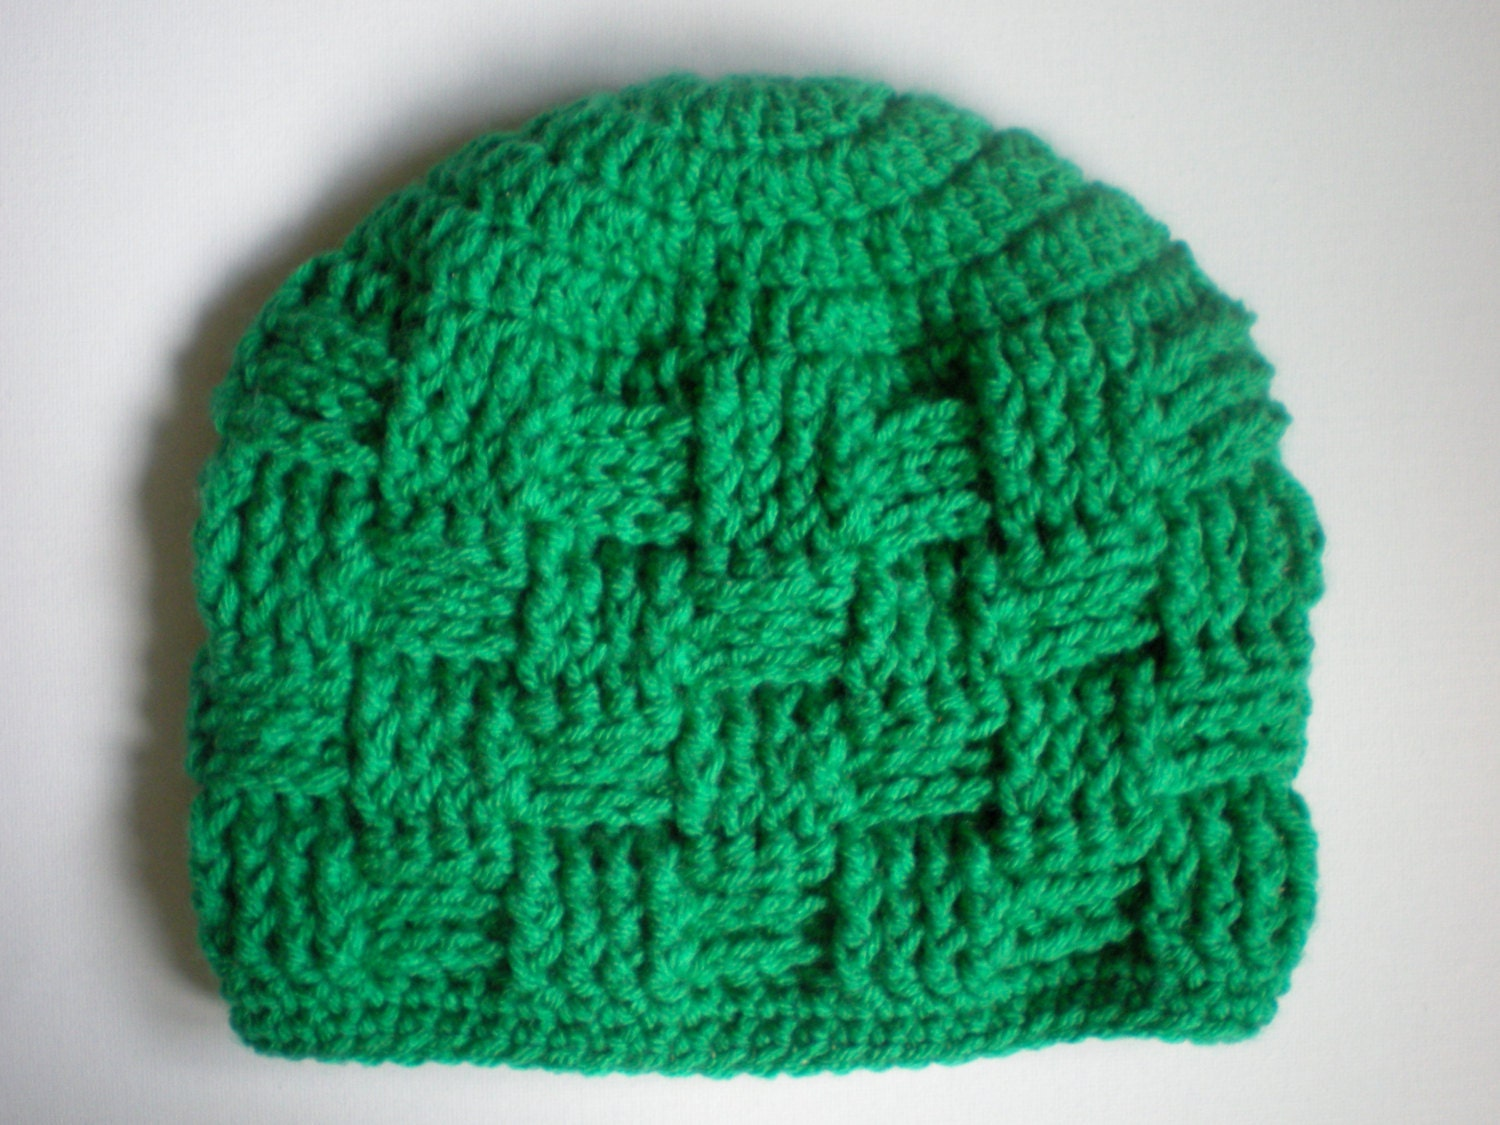 How To Make A Basket Weave Hat : Pattern triscuit hat basket weave beanie woven easy